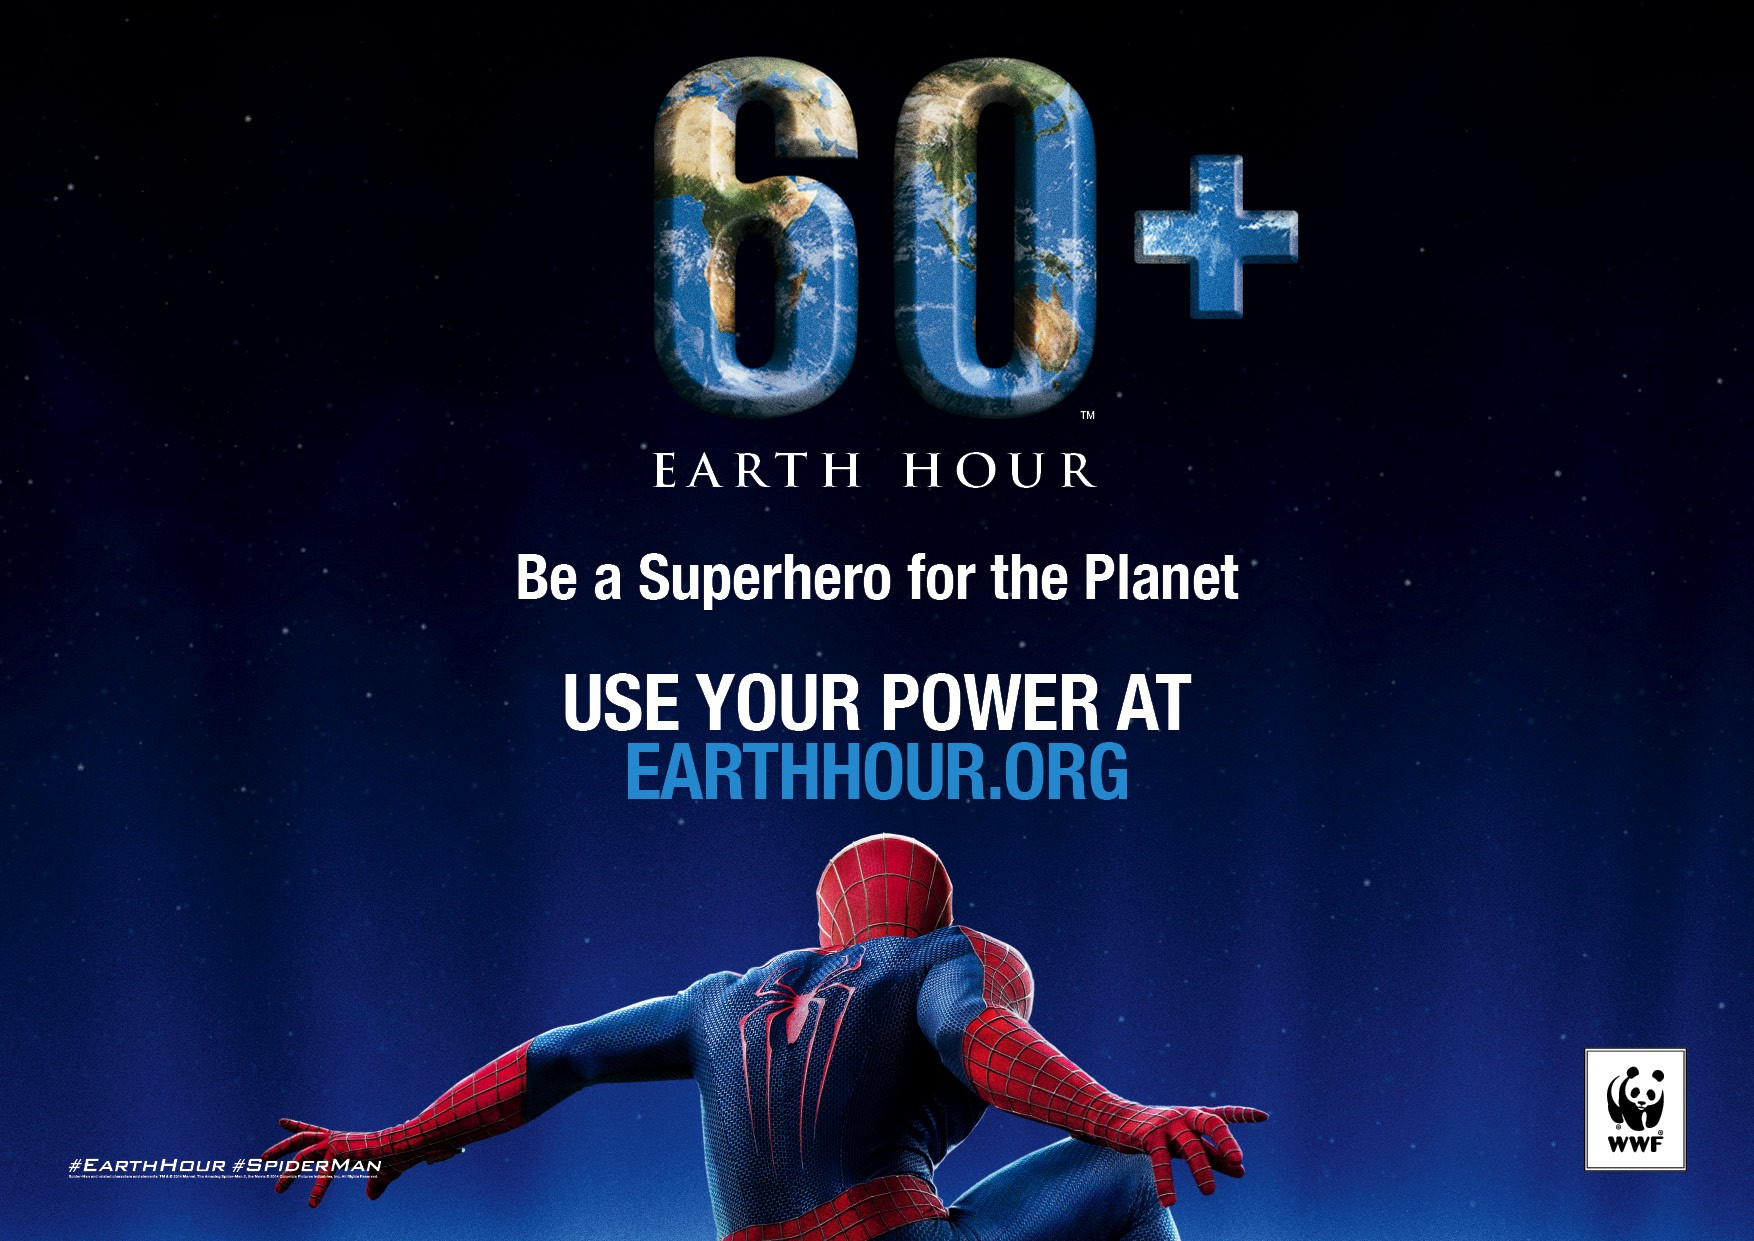 earth_hour_2014_superhero_ambassador_spider_man_1